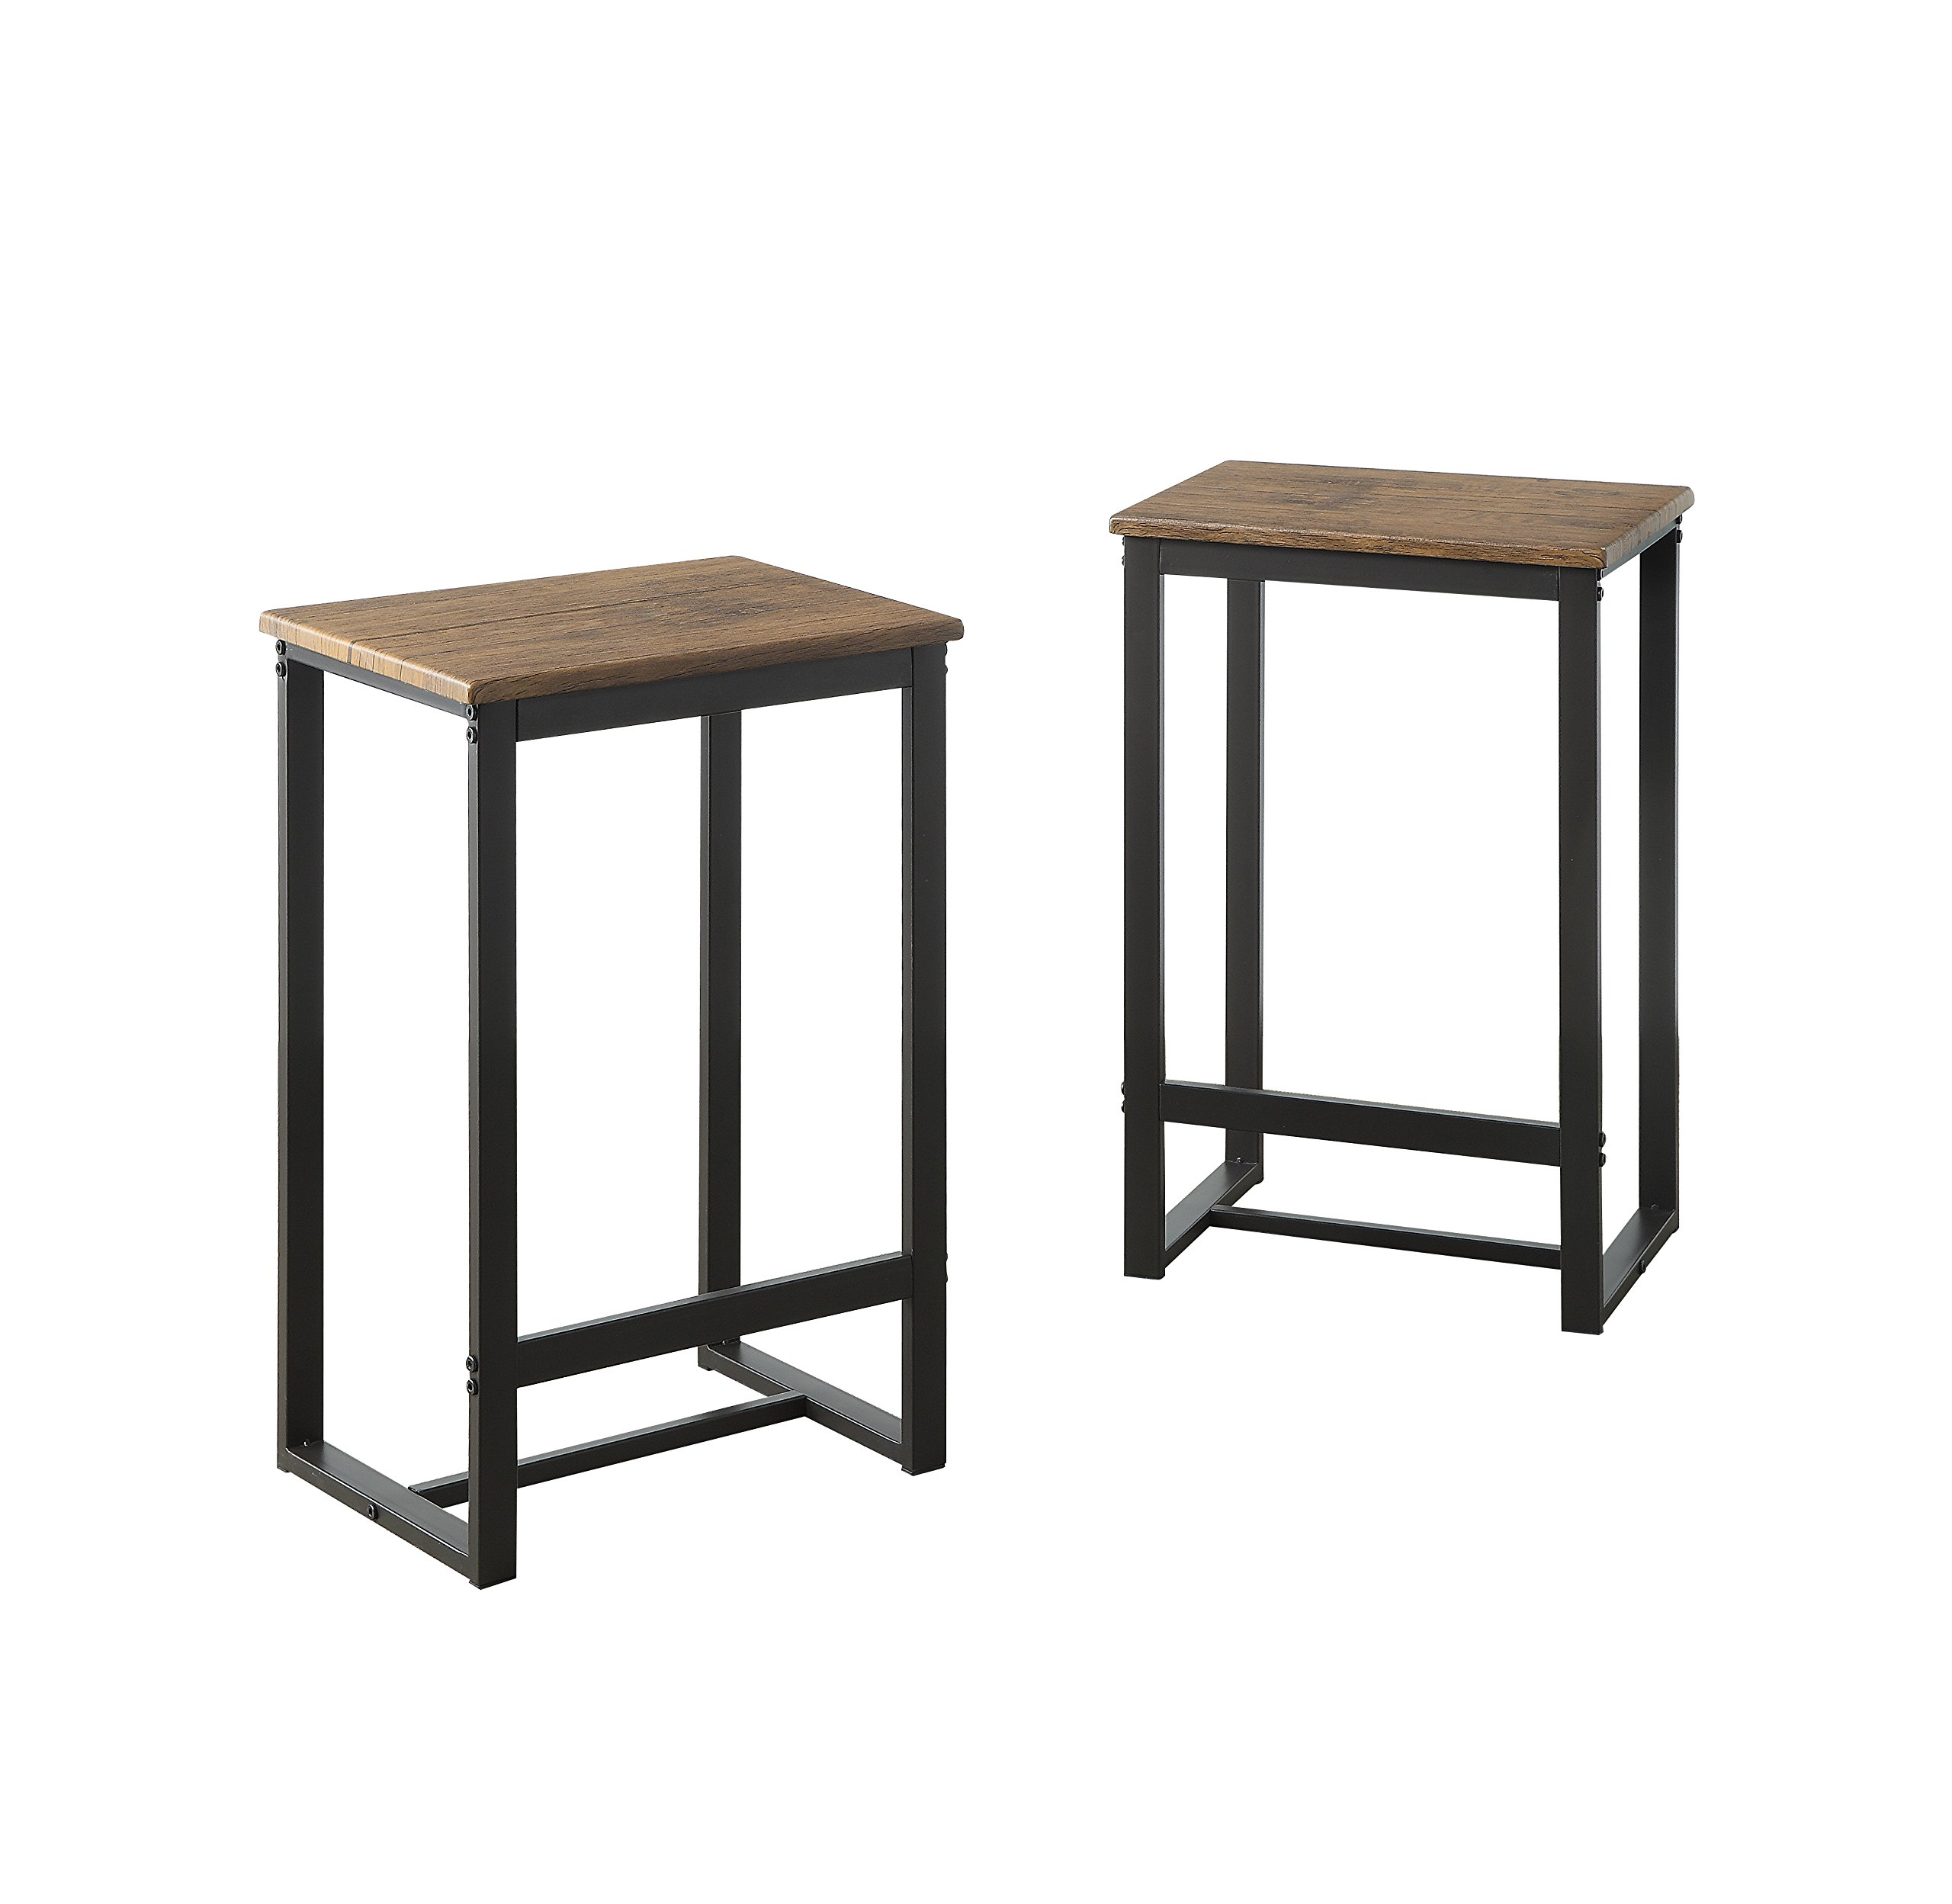 Abington Lane Set of 2 Stools - Sleek and Simple Chairs for Dining Tables, Kitchen Tables, Bar Stools by Abington Lane